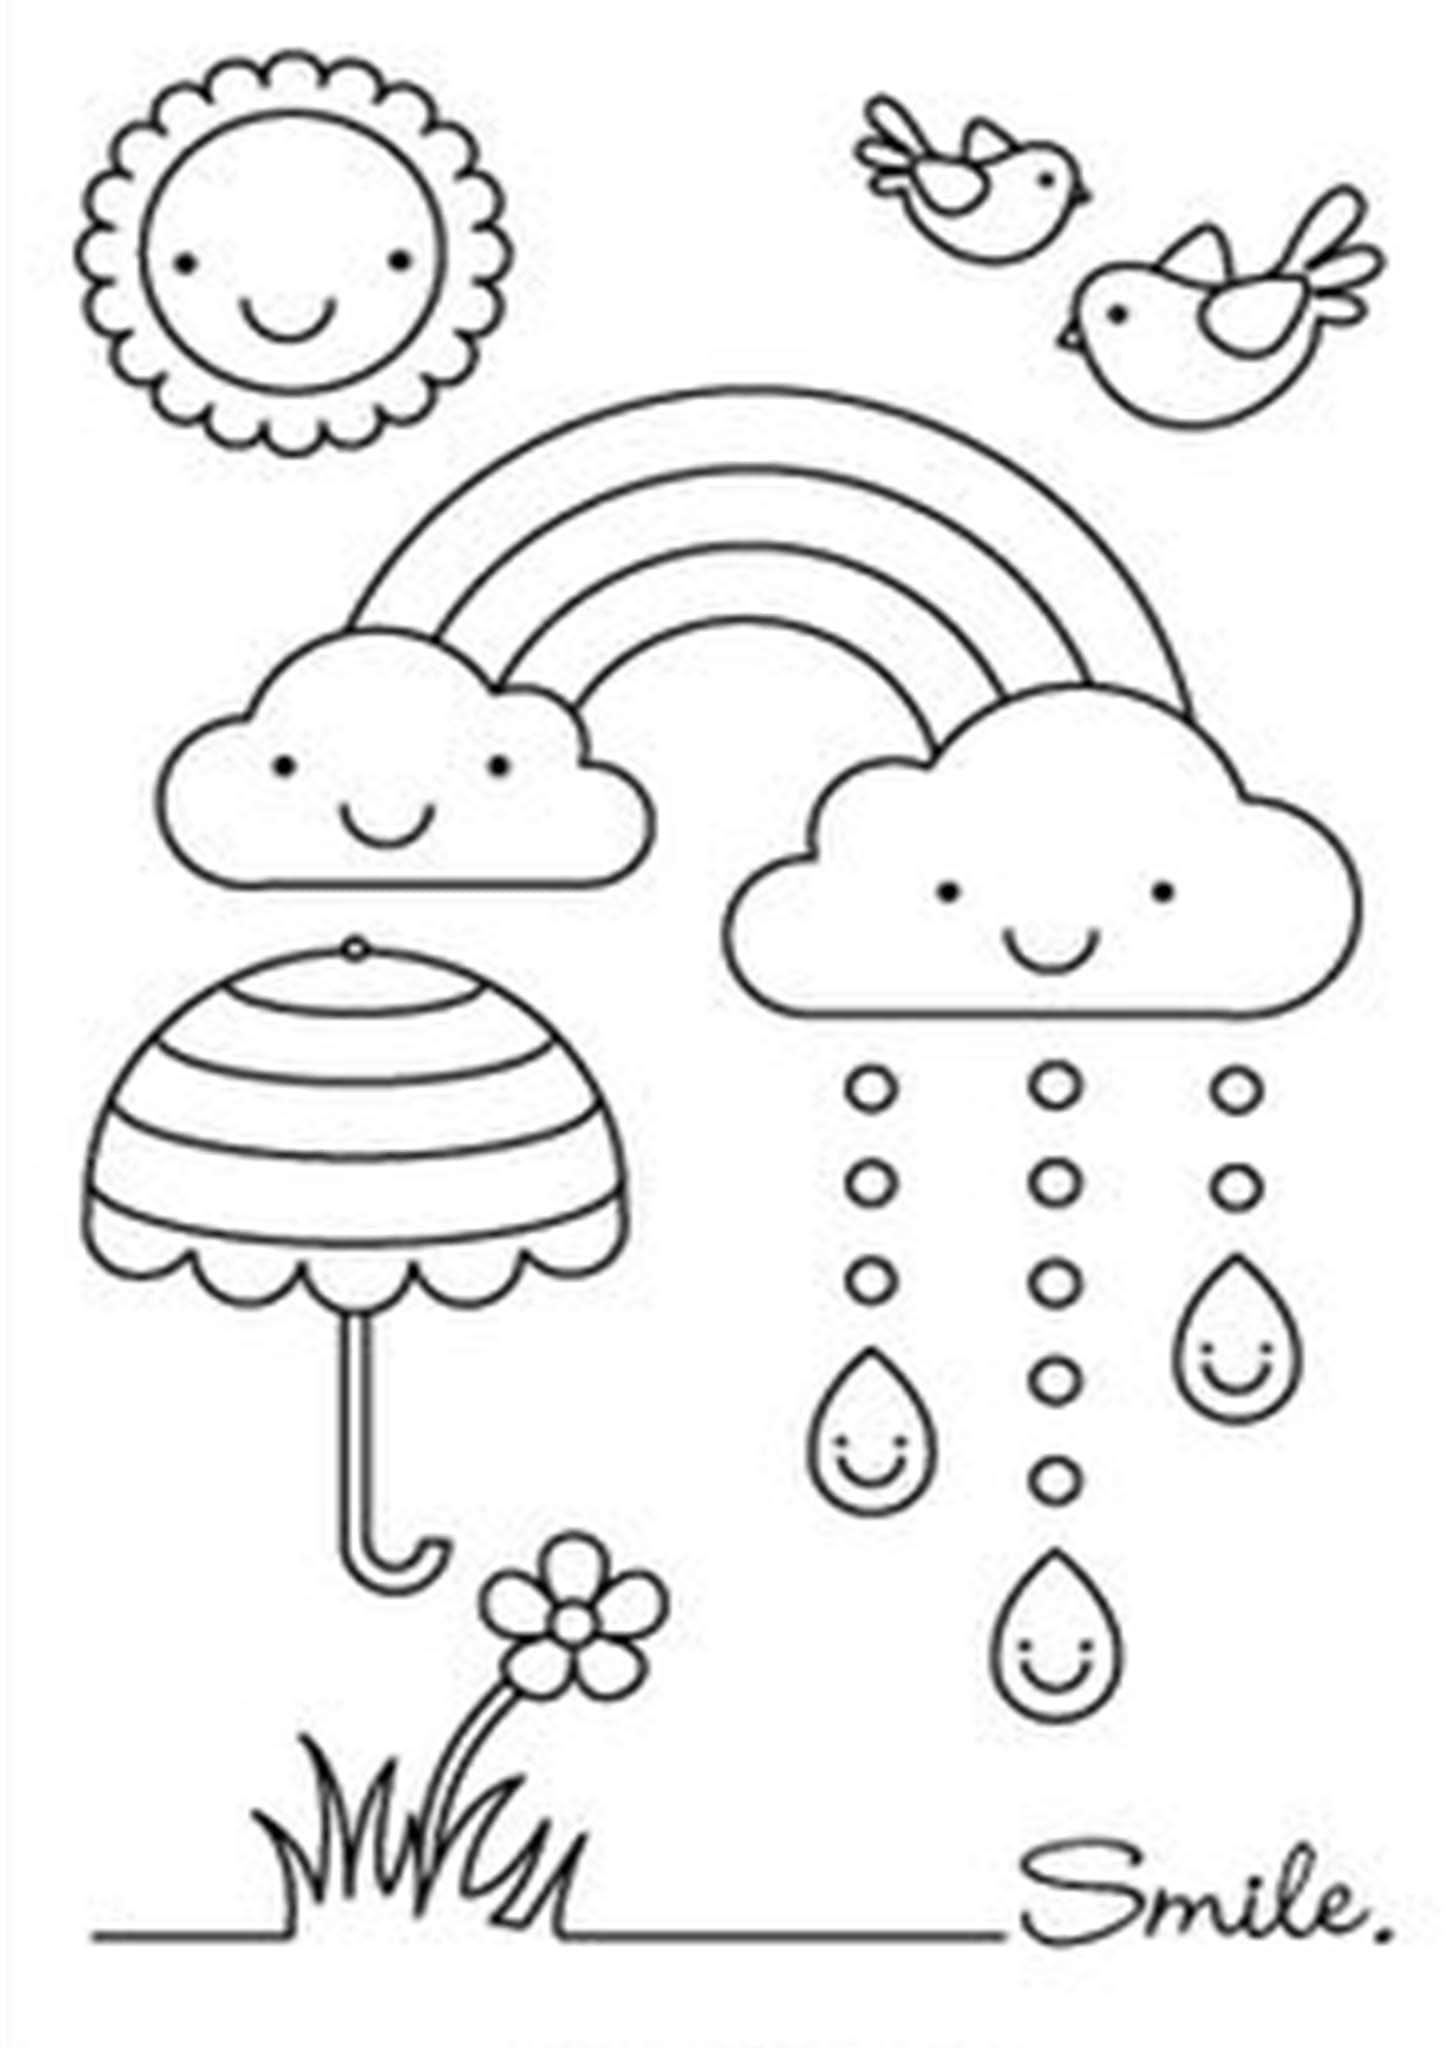 Pin On Space Fantasy Coloring Pages